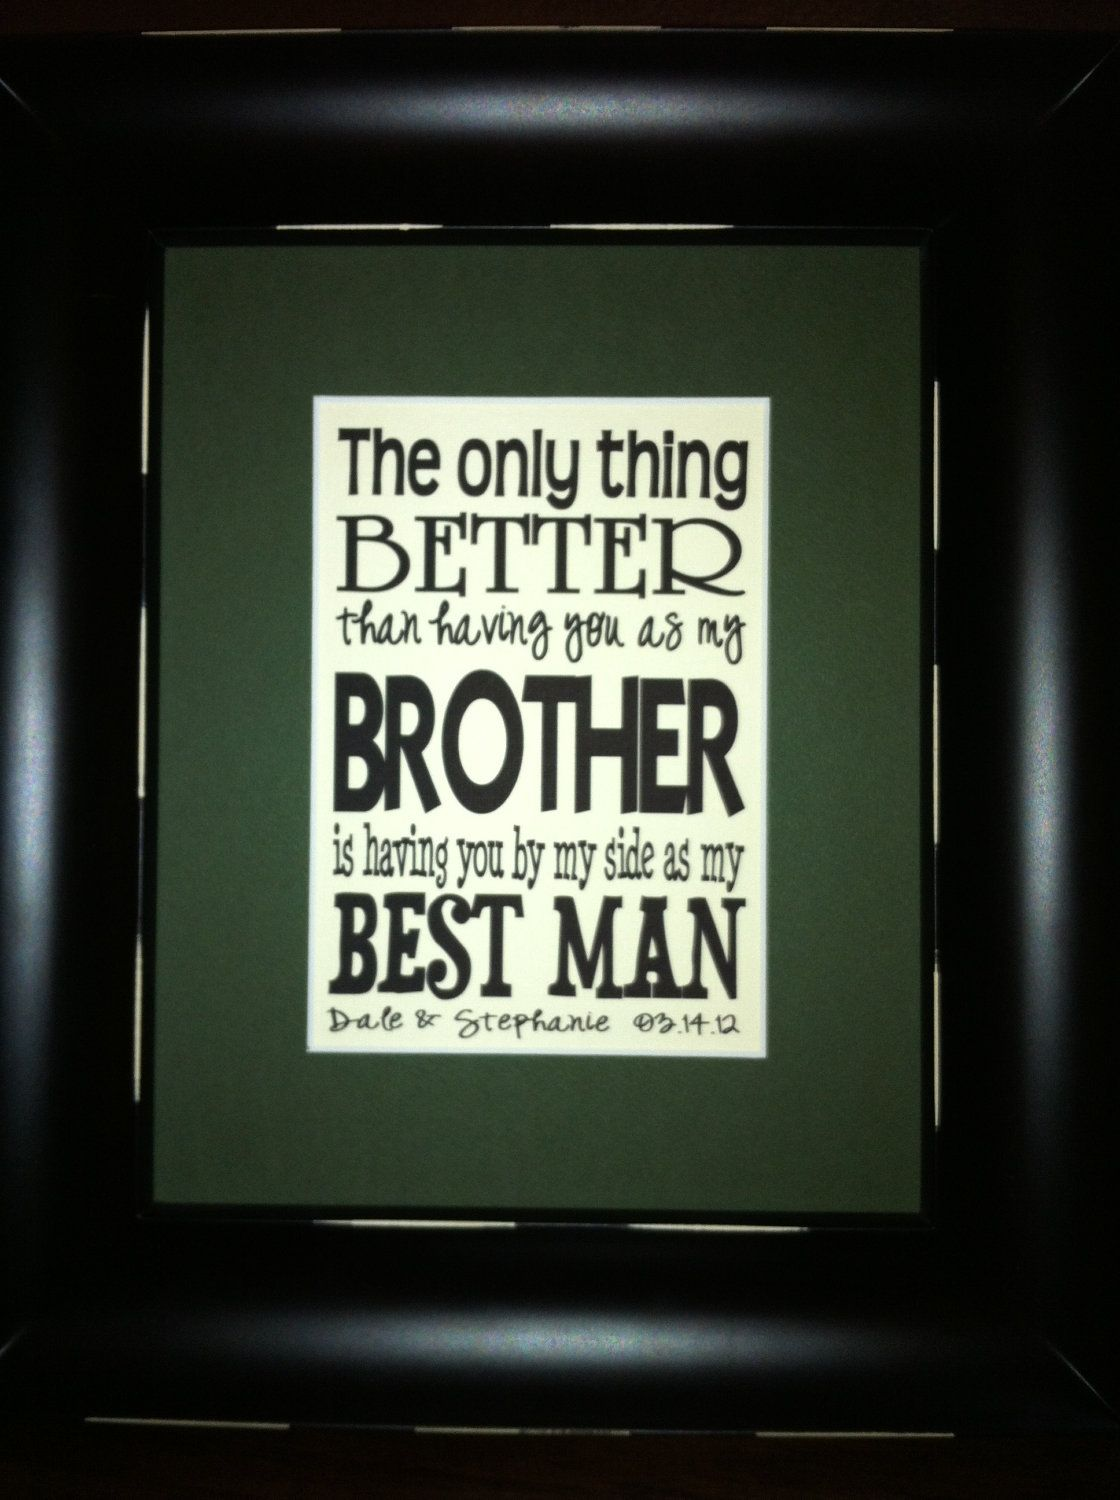 Having You As A Brother And Best Man Custom Print Matted On An 8x10 Mat